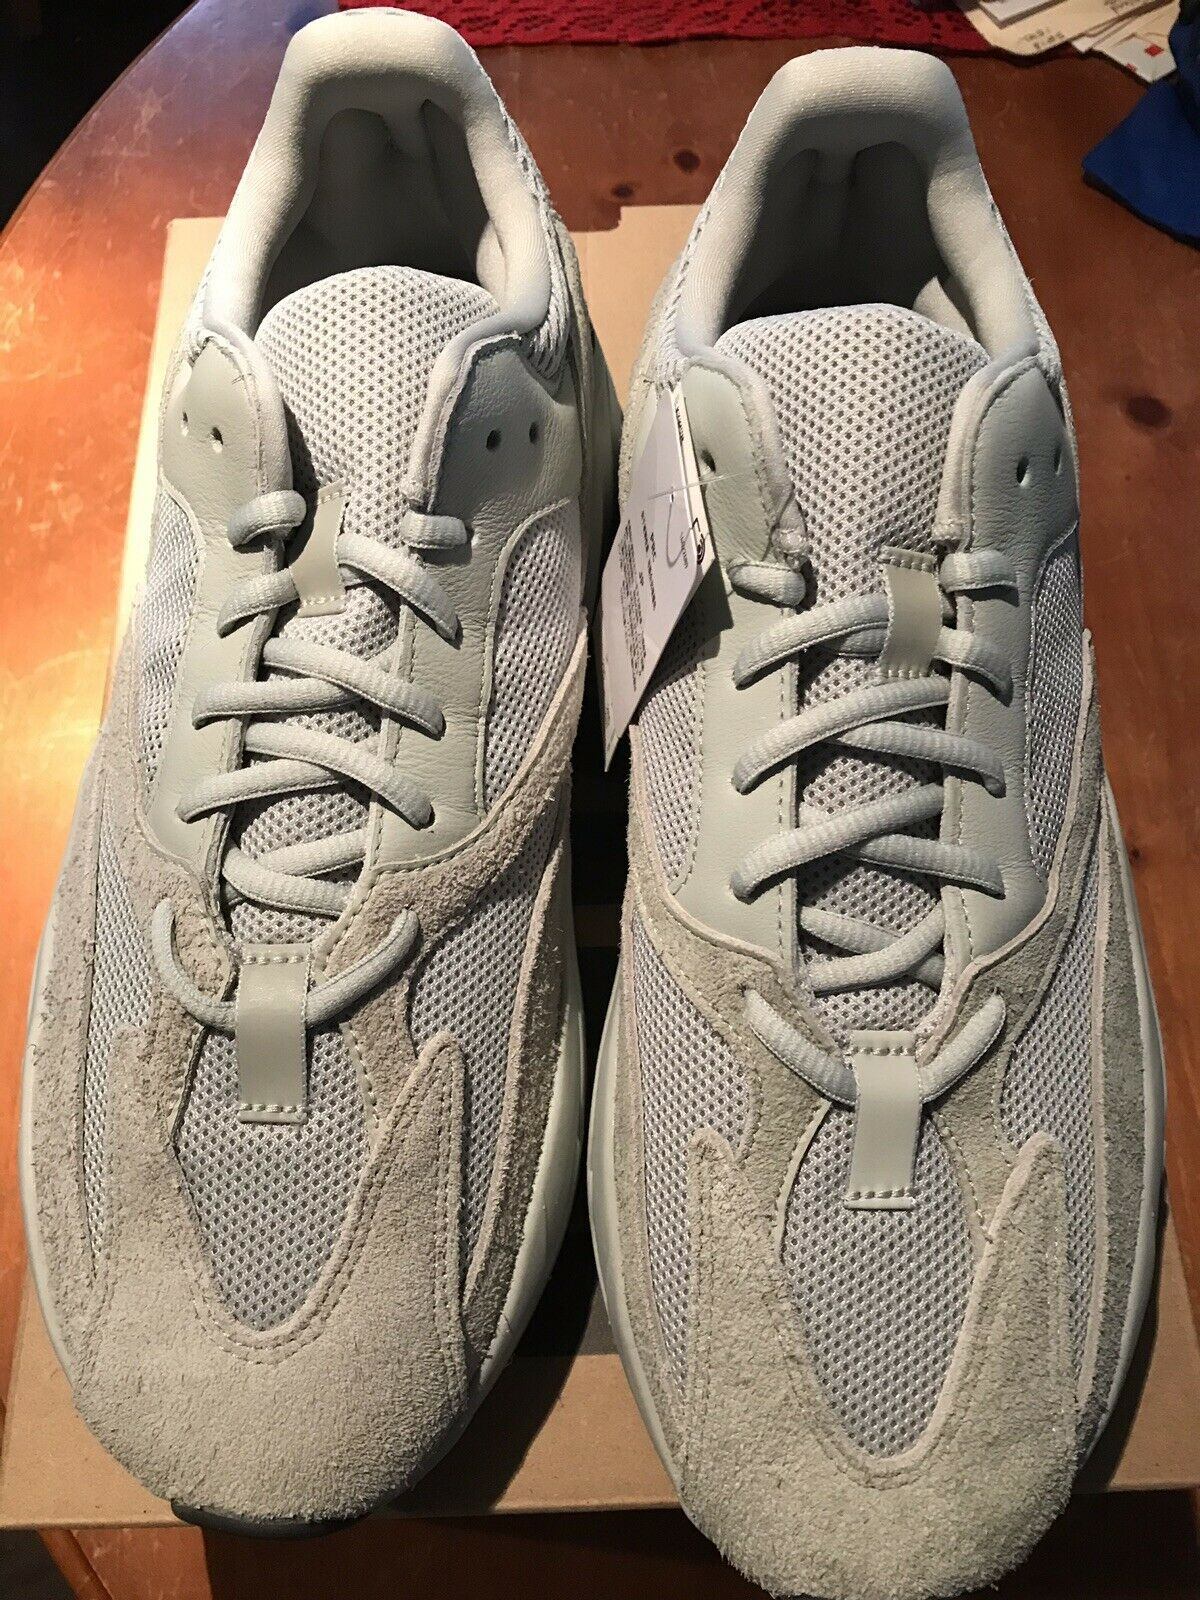 NEW Adidas Yeezy 700 Salt SIZE 11.5 100% Authentic from Adidas In Hand Ships Now